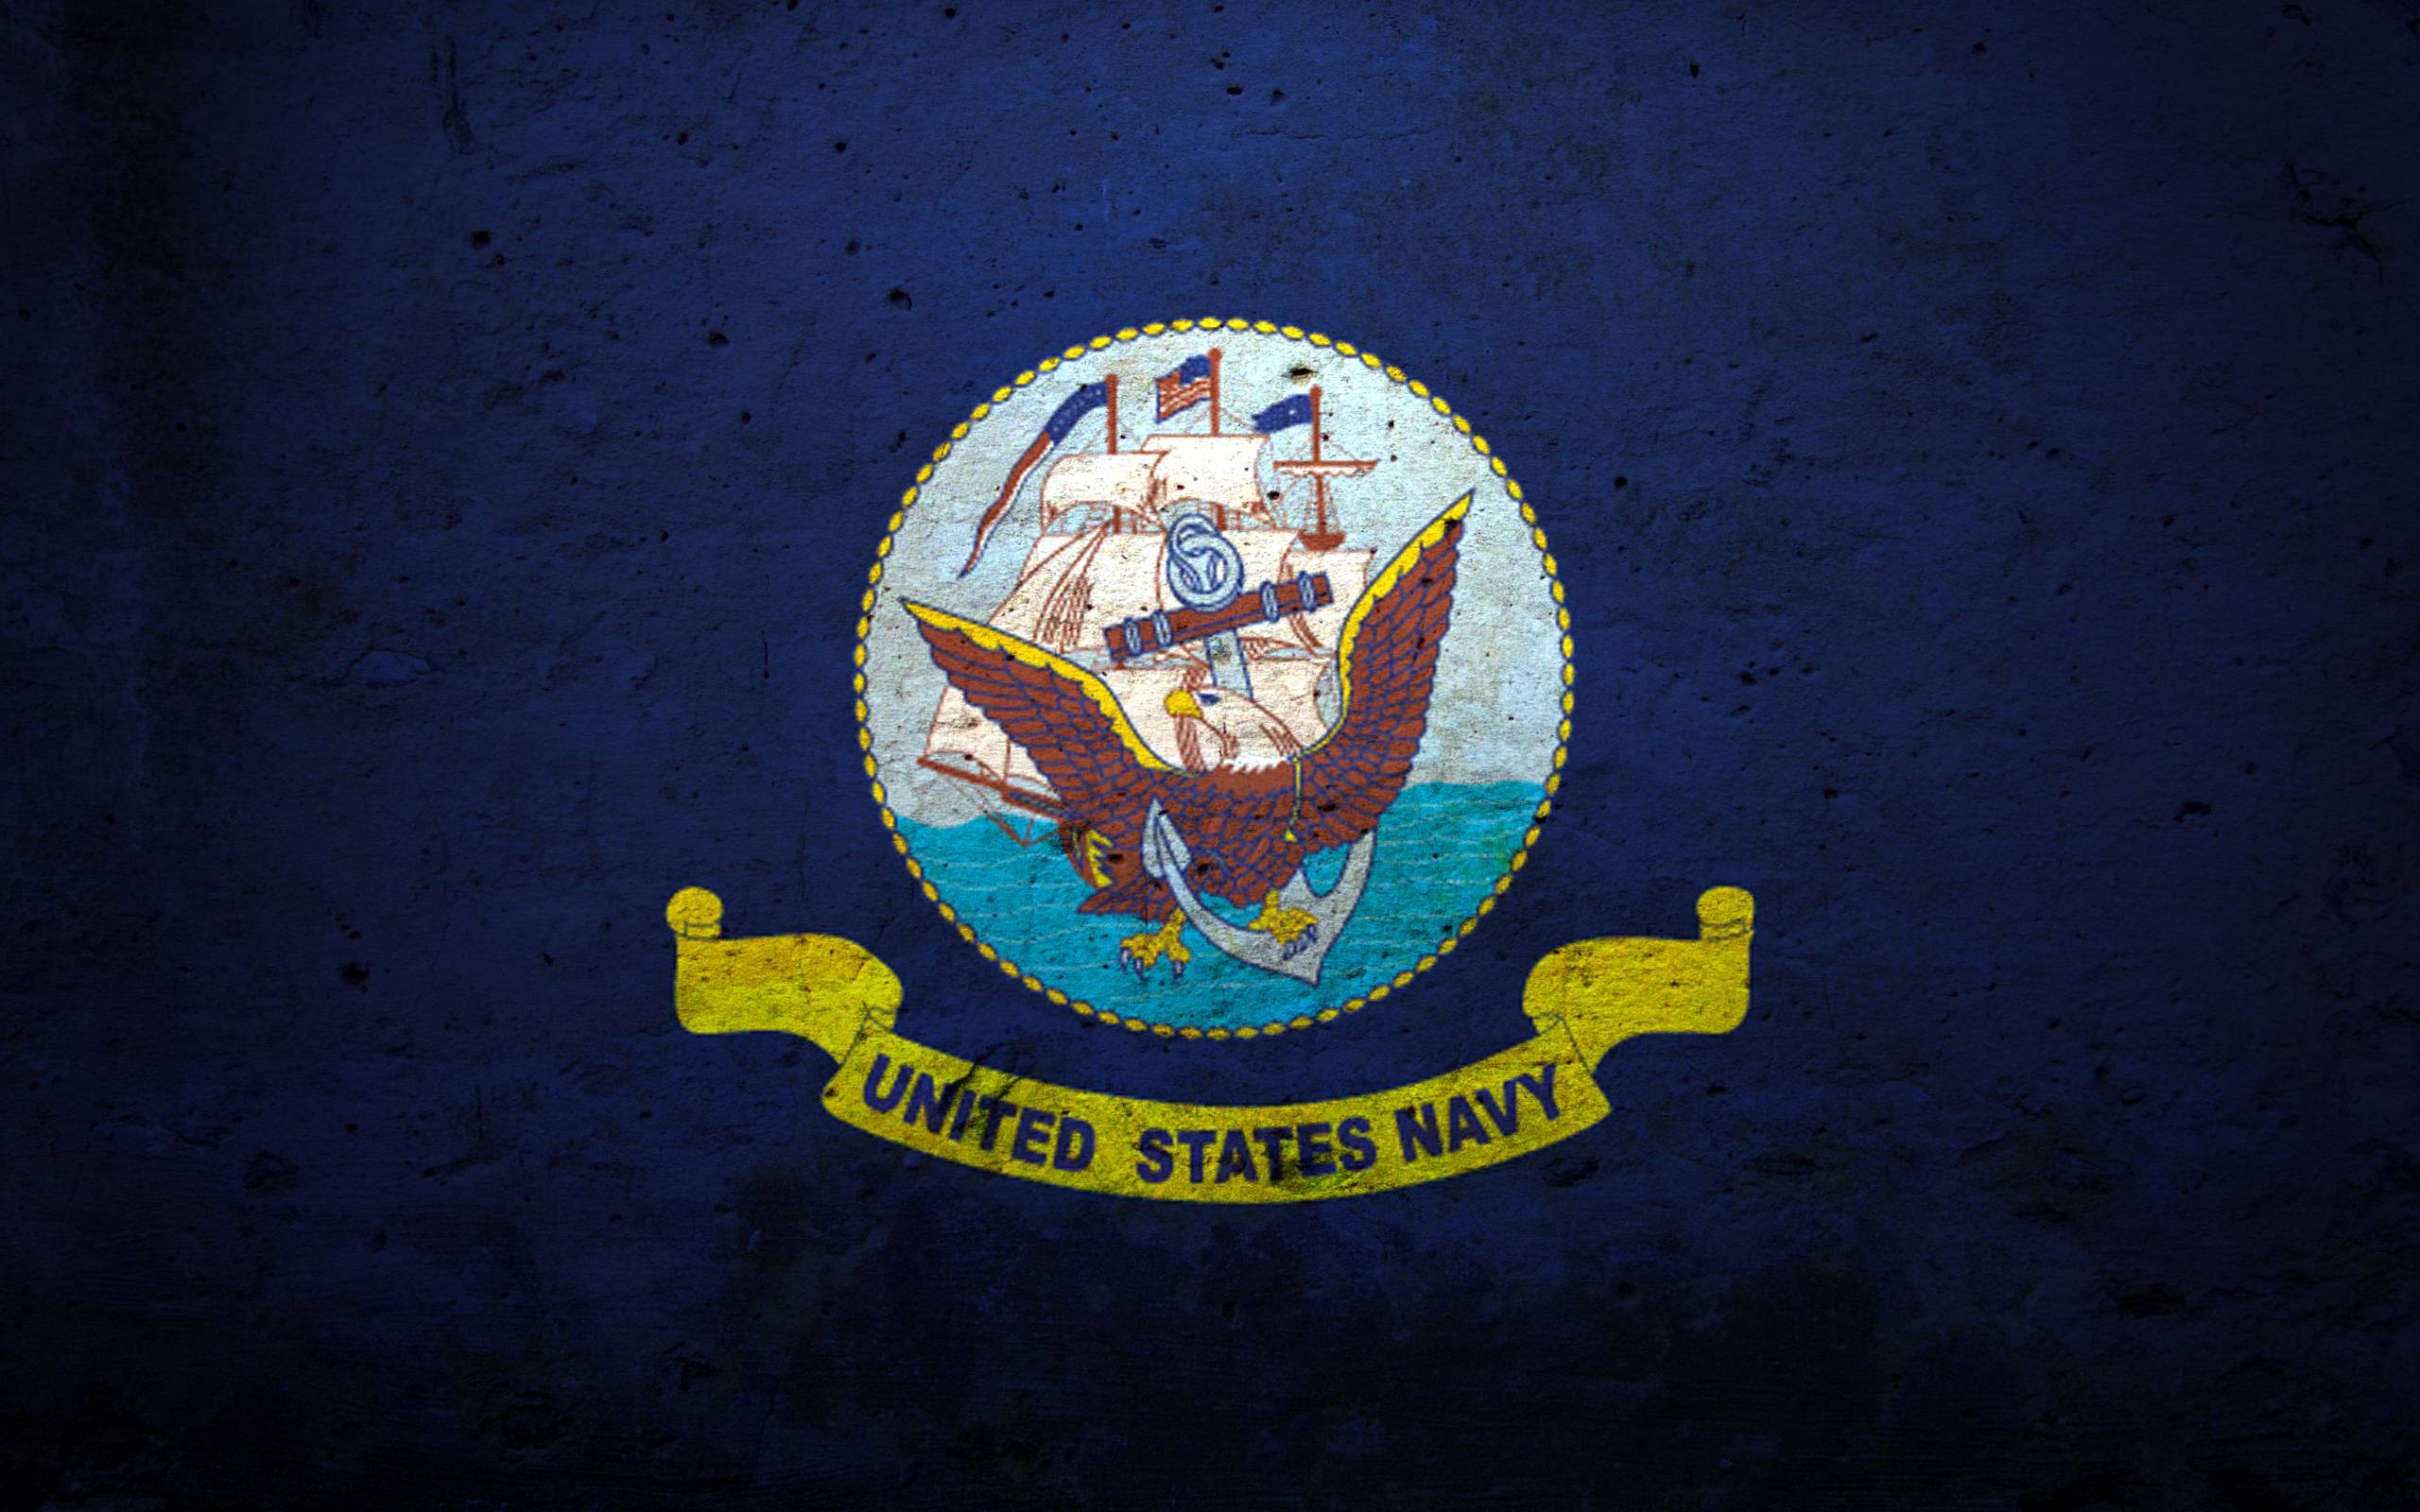 navy screen saver